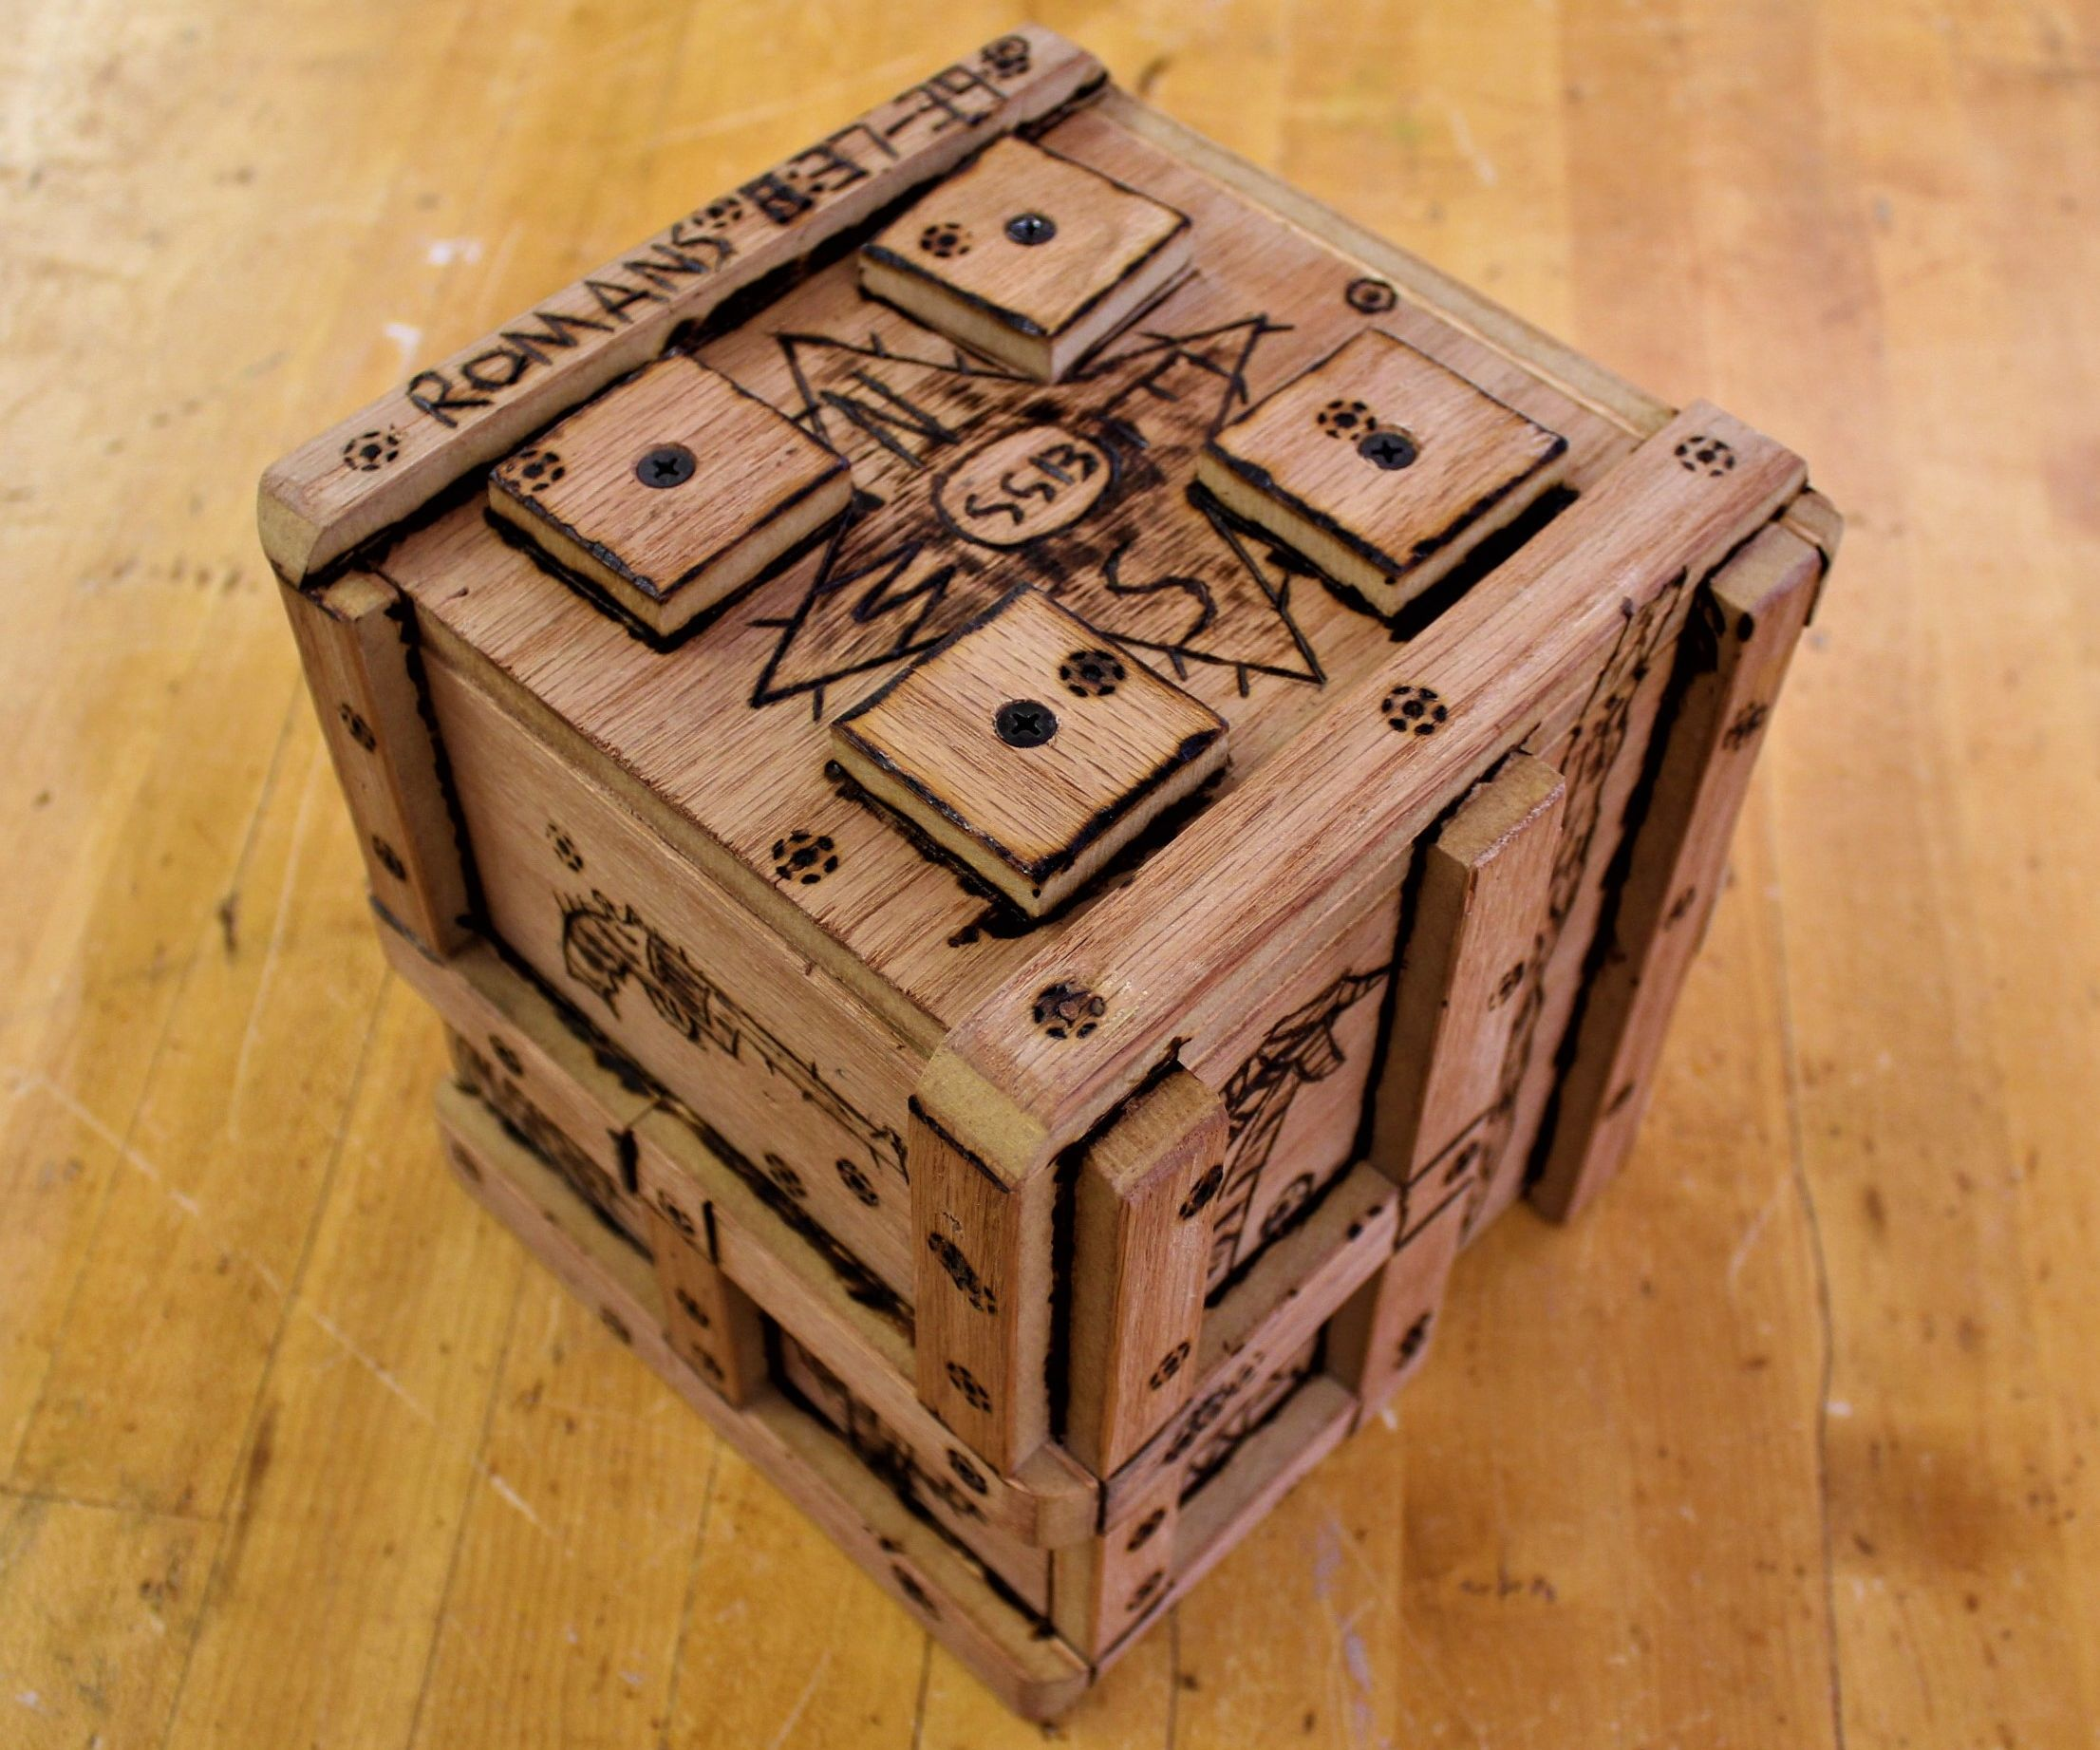 How to Make the Centrifugal Equation Box (That We Made for Mr. Puzzle!)